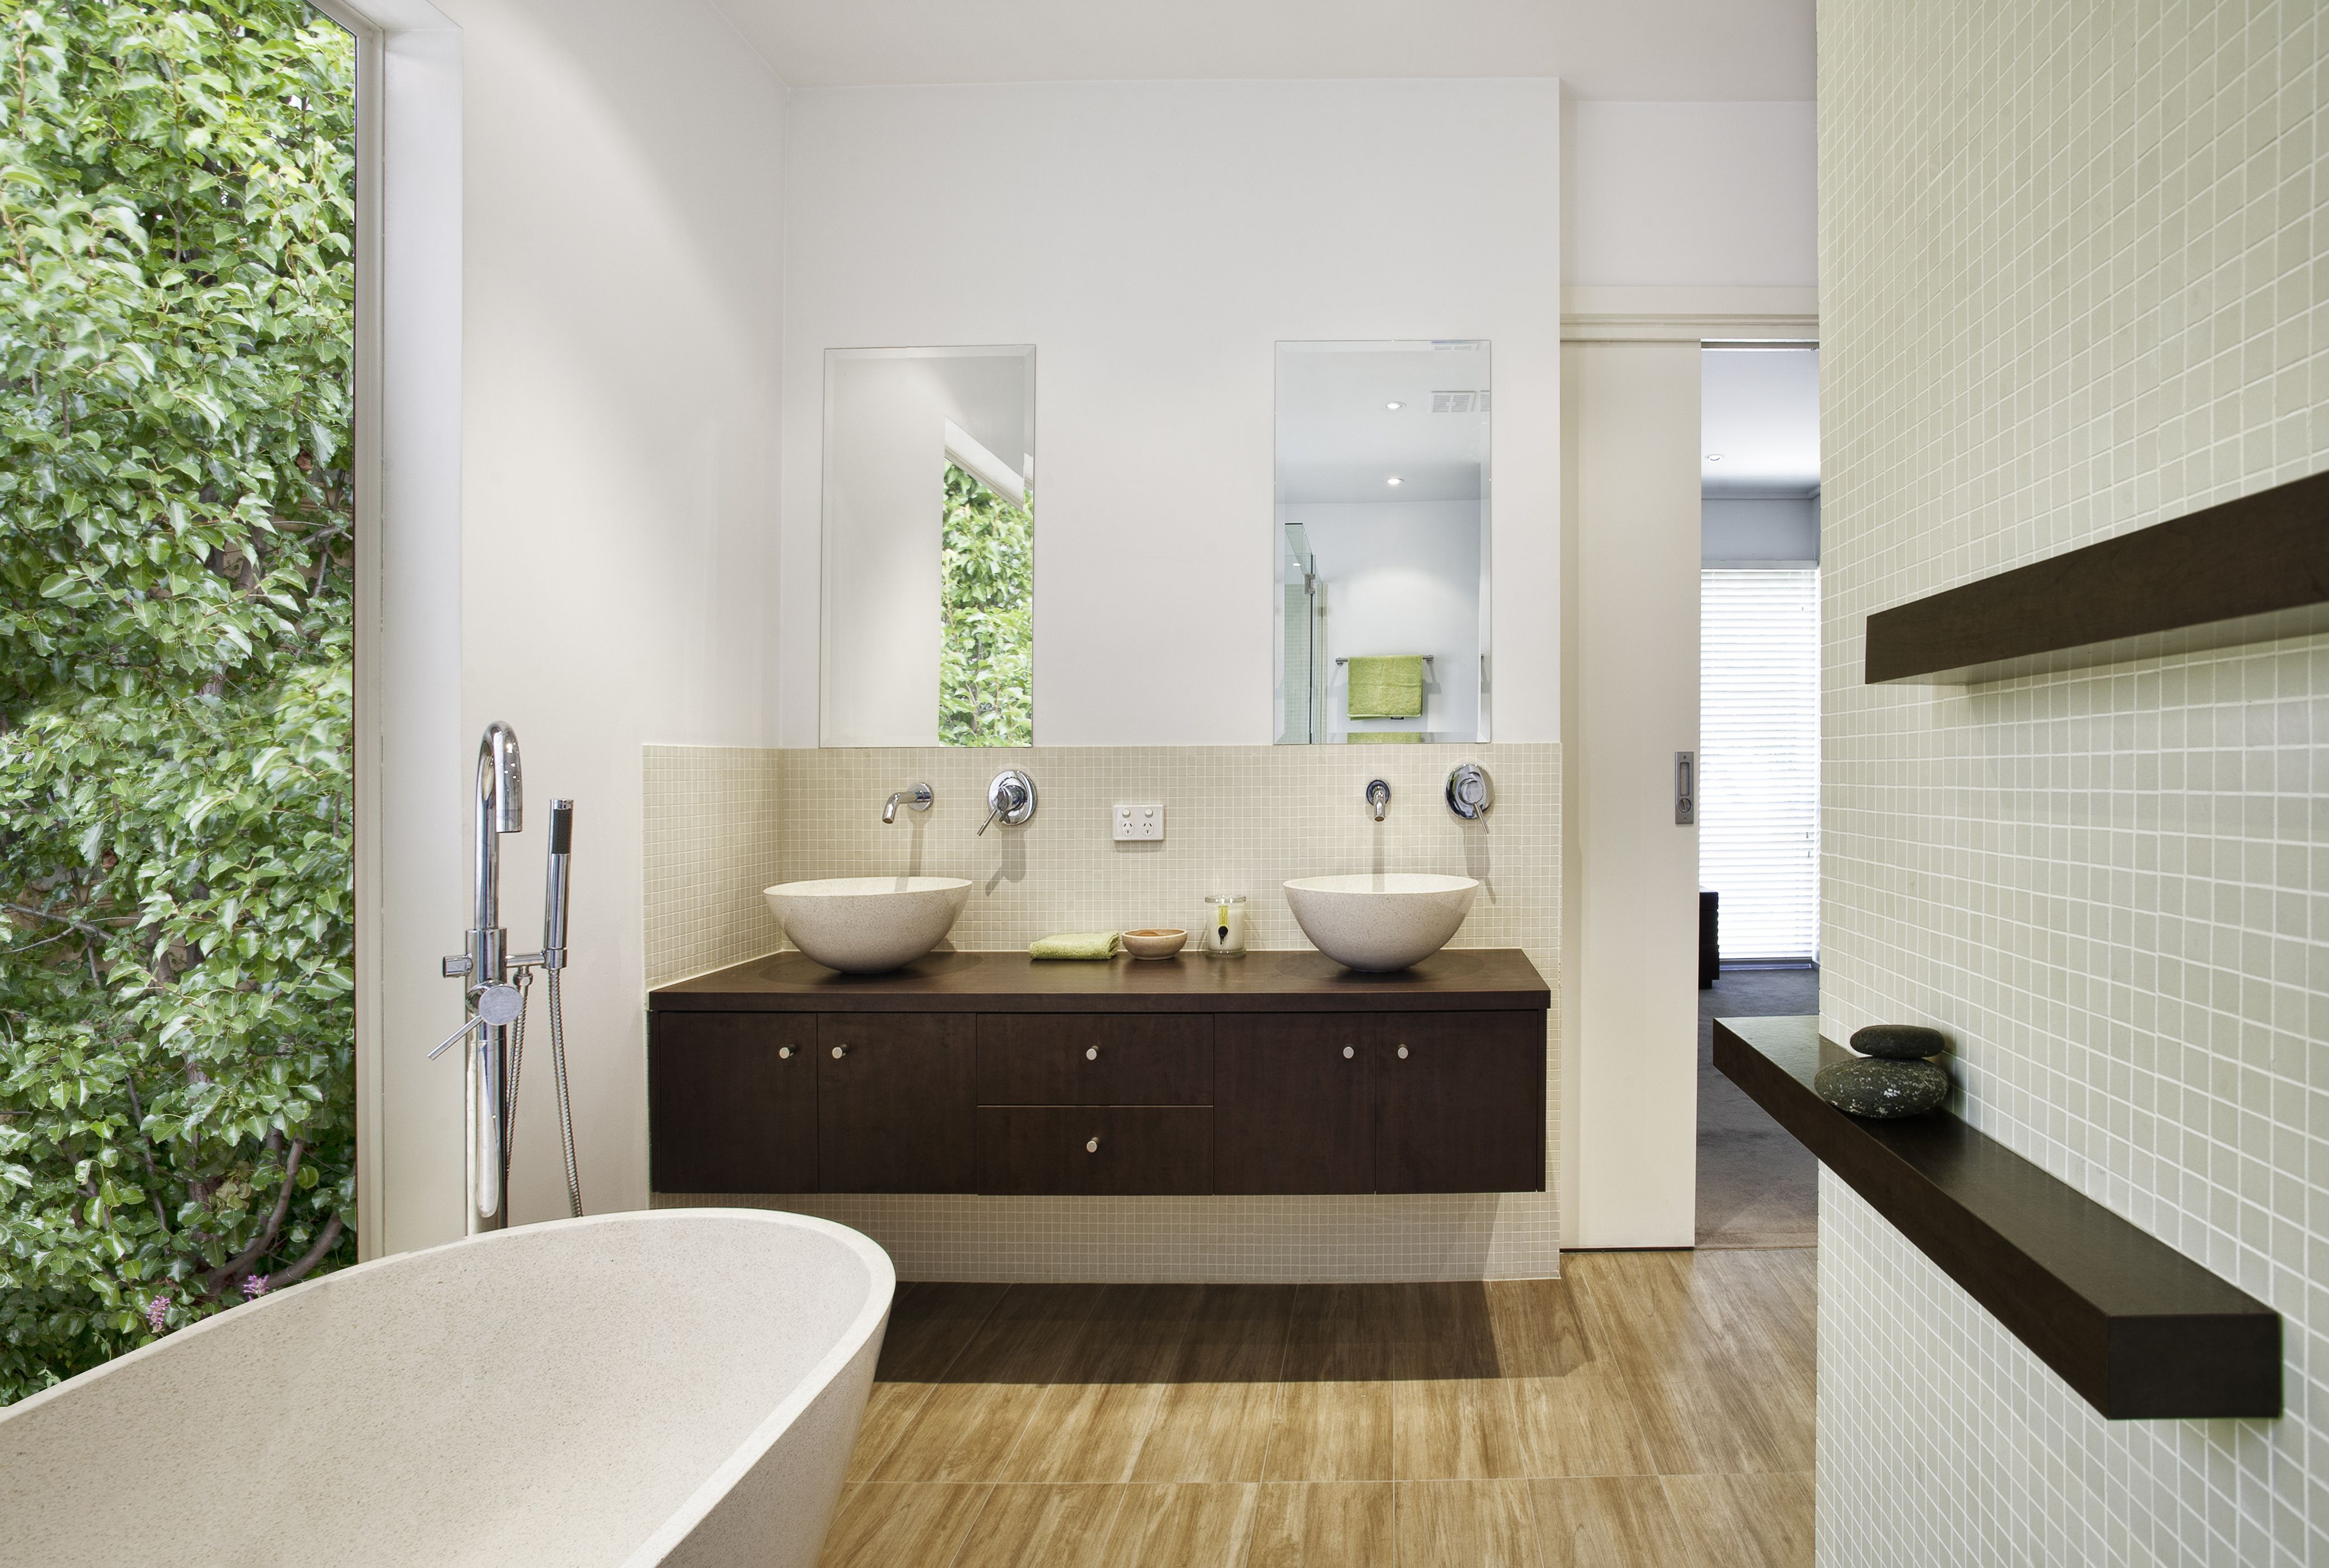 Raw zen - renovation | Architecure - Design - Kitchens - Bathrooms ...